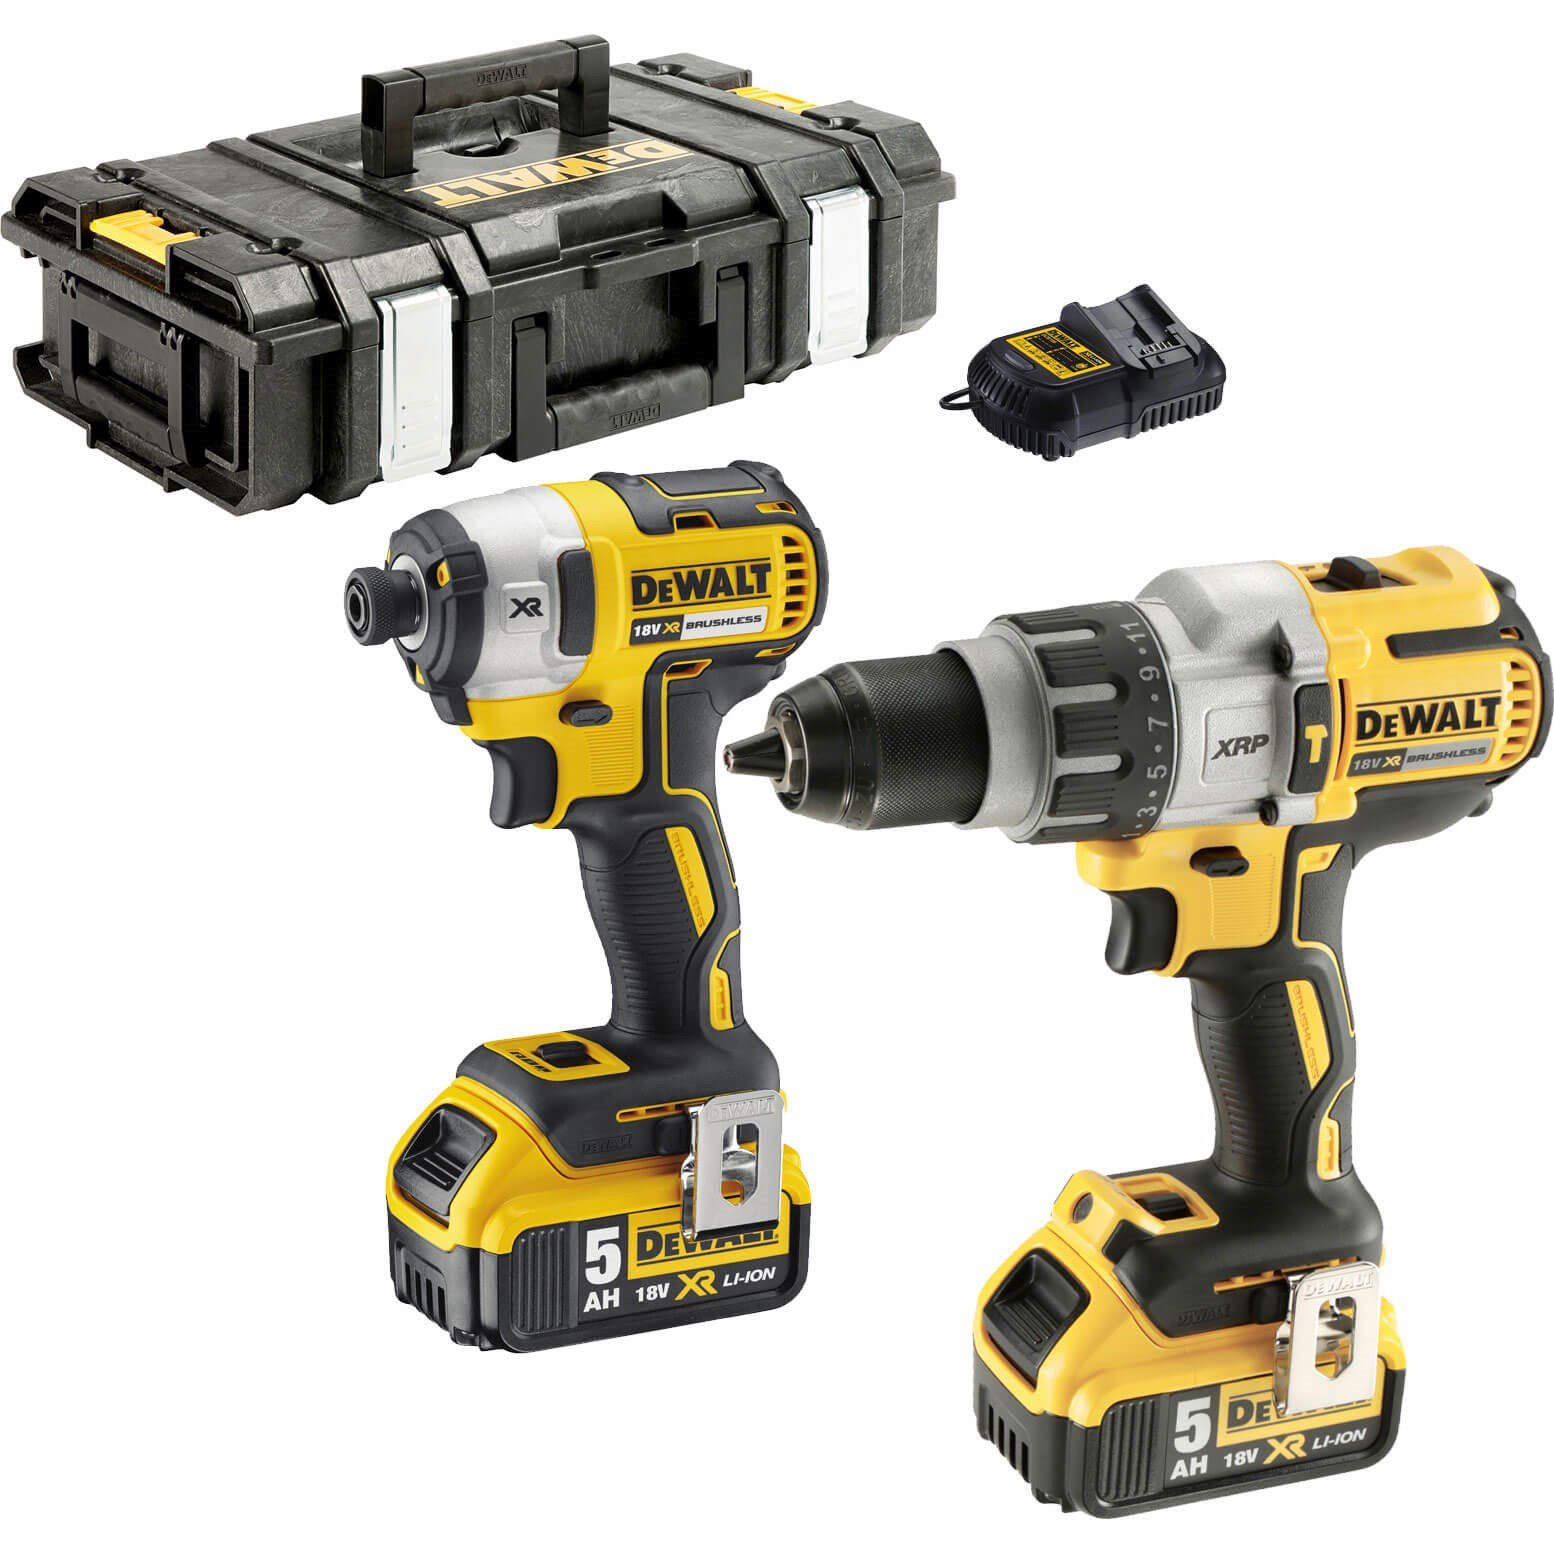 Dewalt Dck276 18v Xr Cordless Brushless Combi Drill And Impact Driver Combi Drills